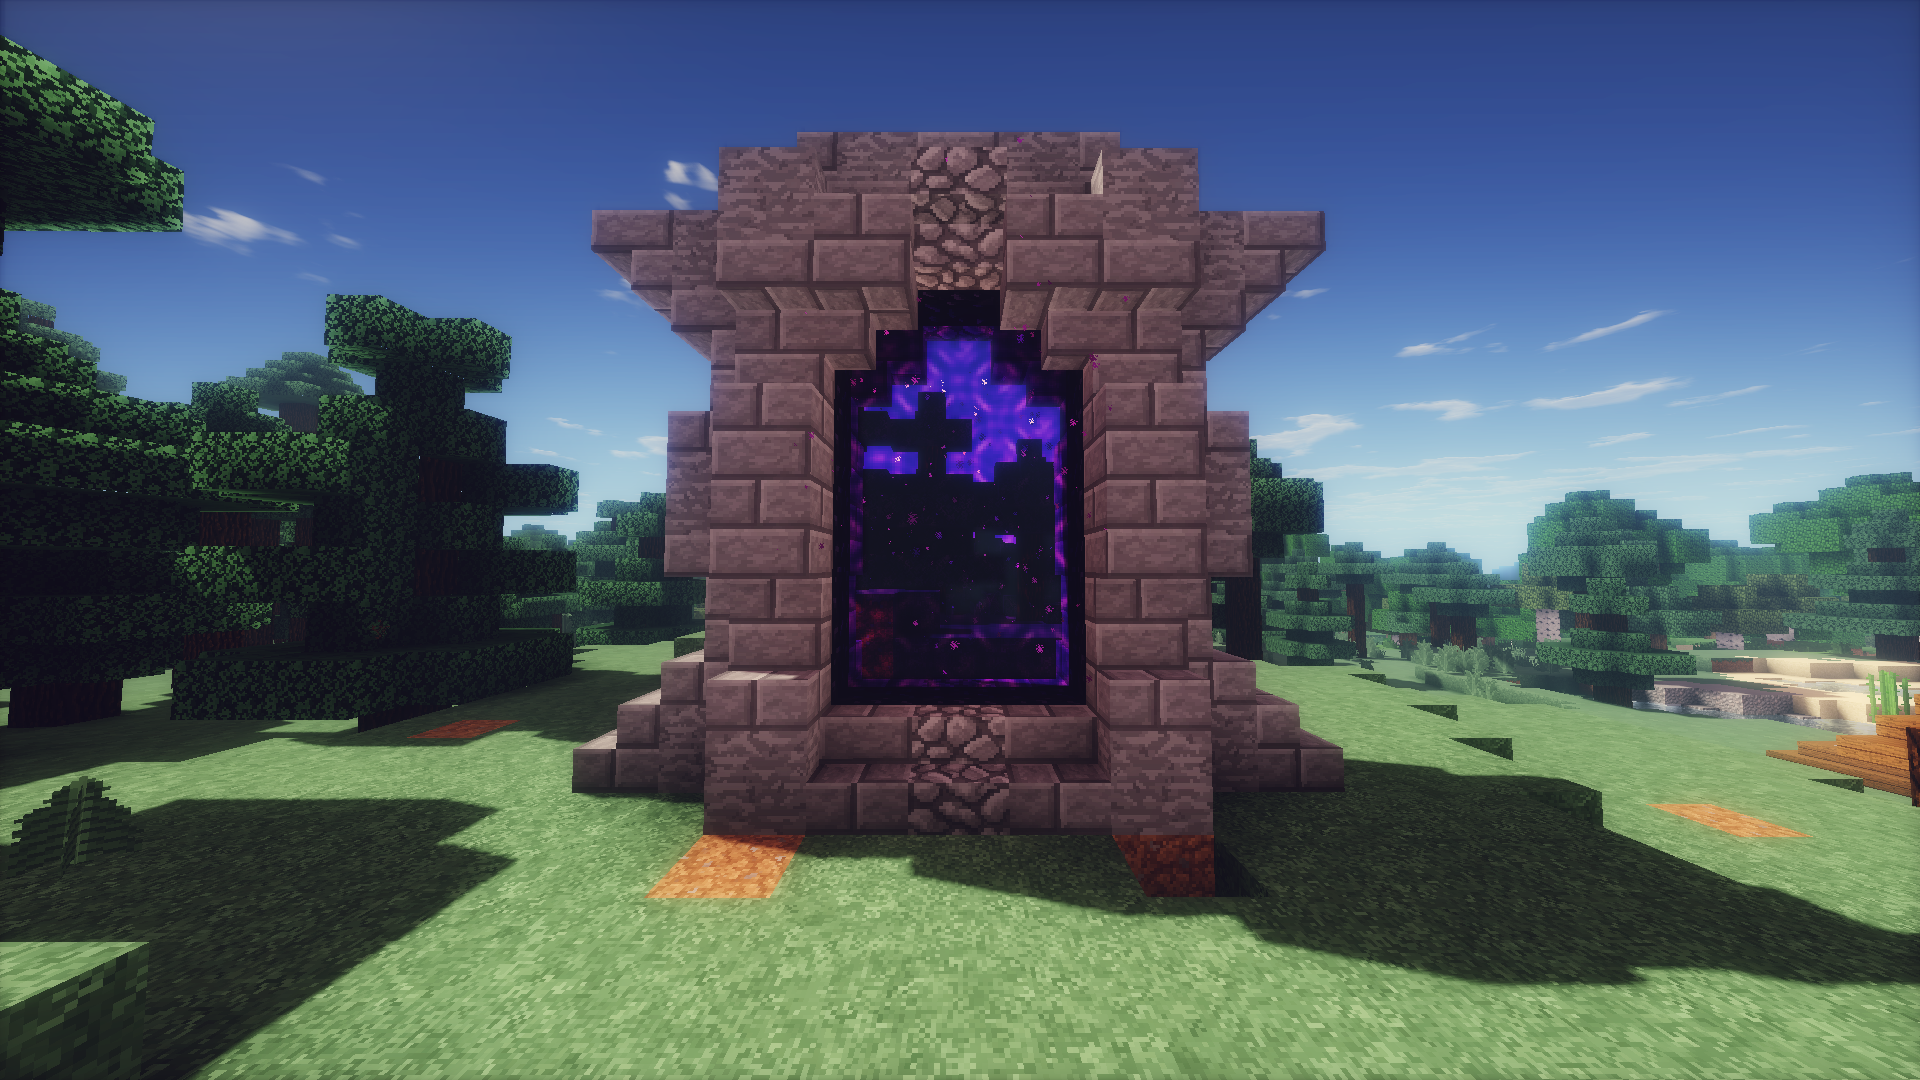 Minecraft Guide: How to Build a Nether Portal